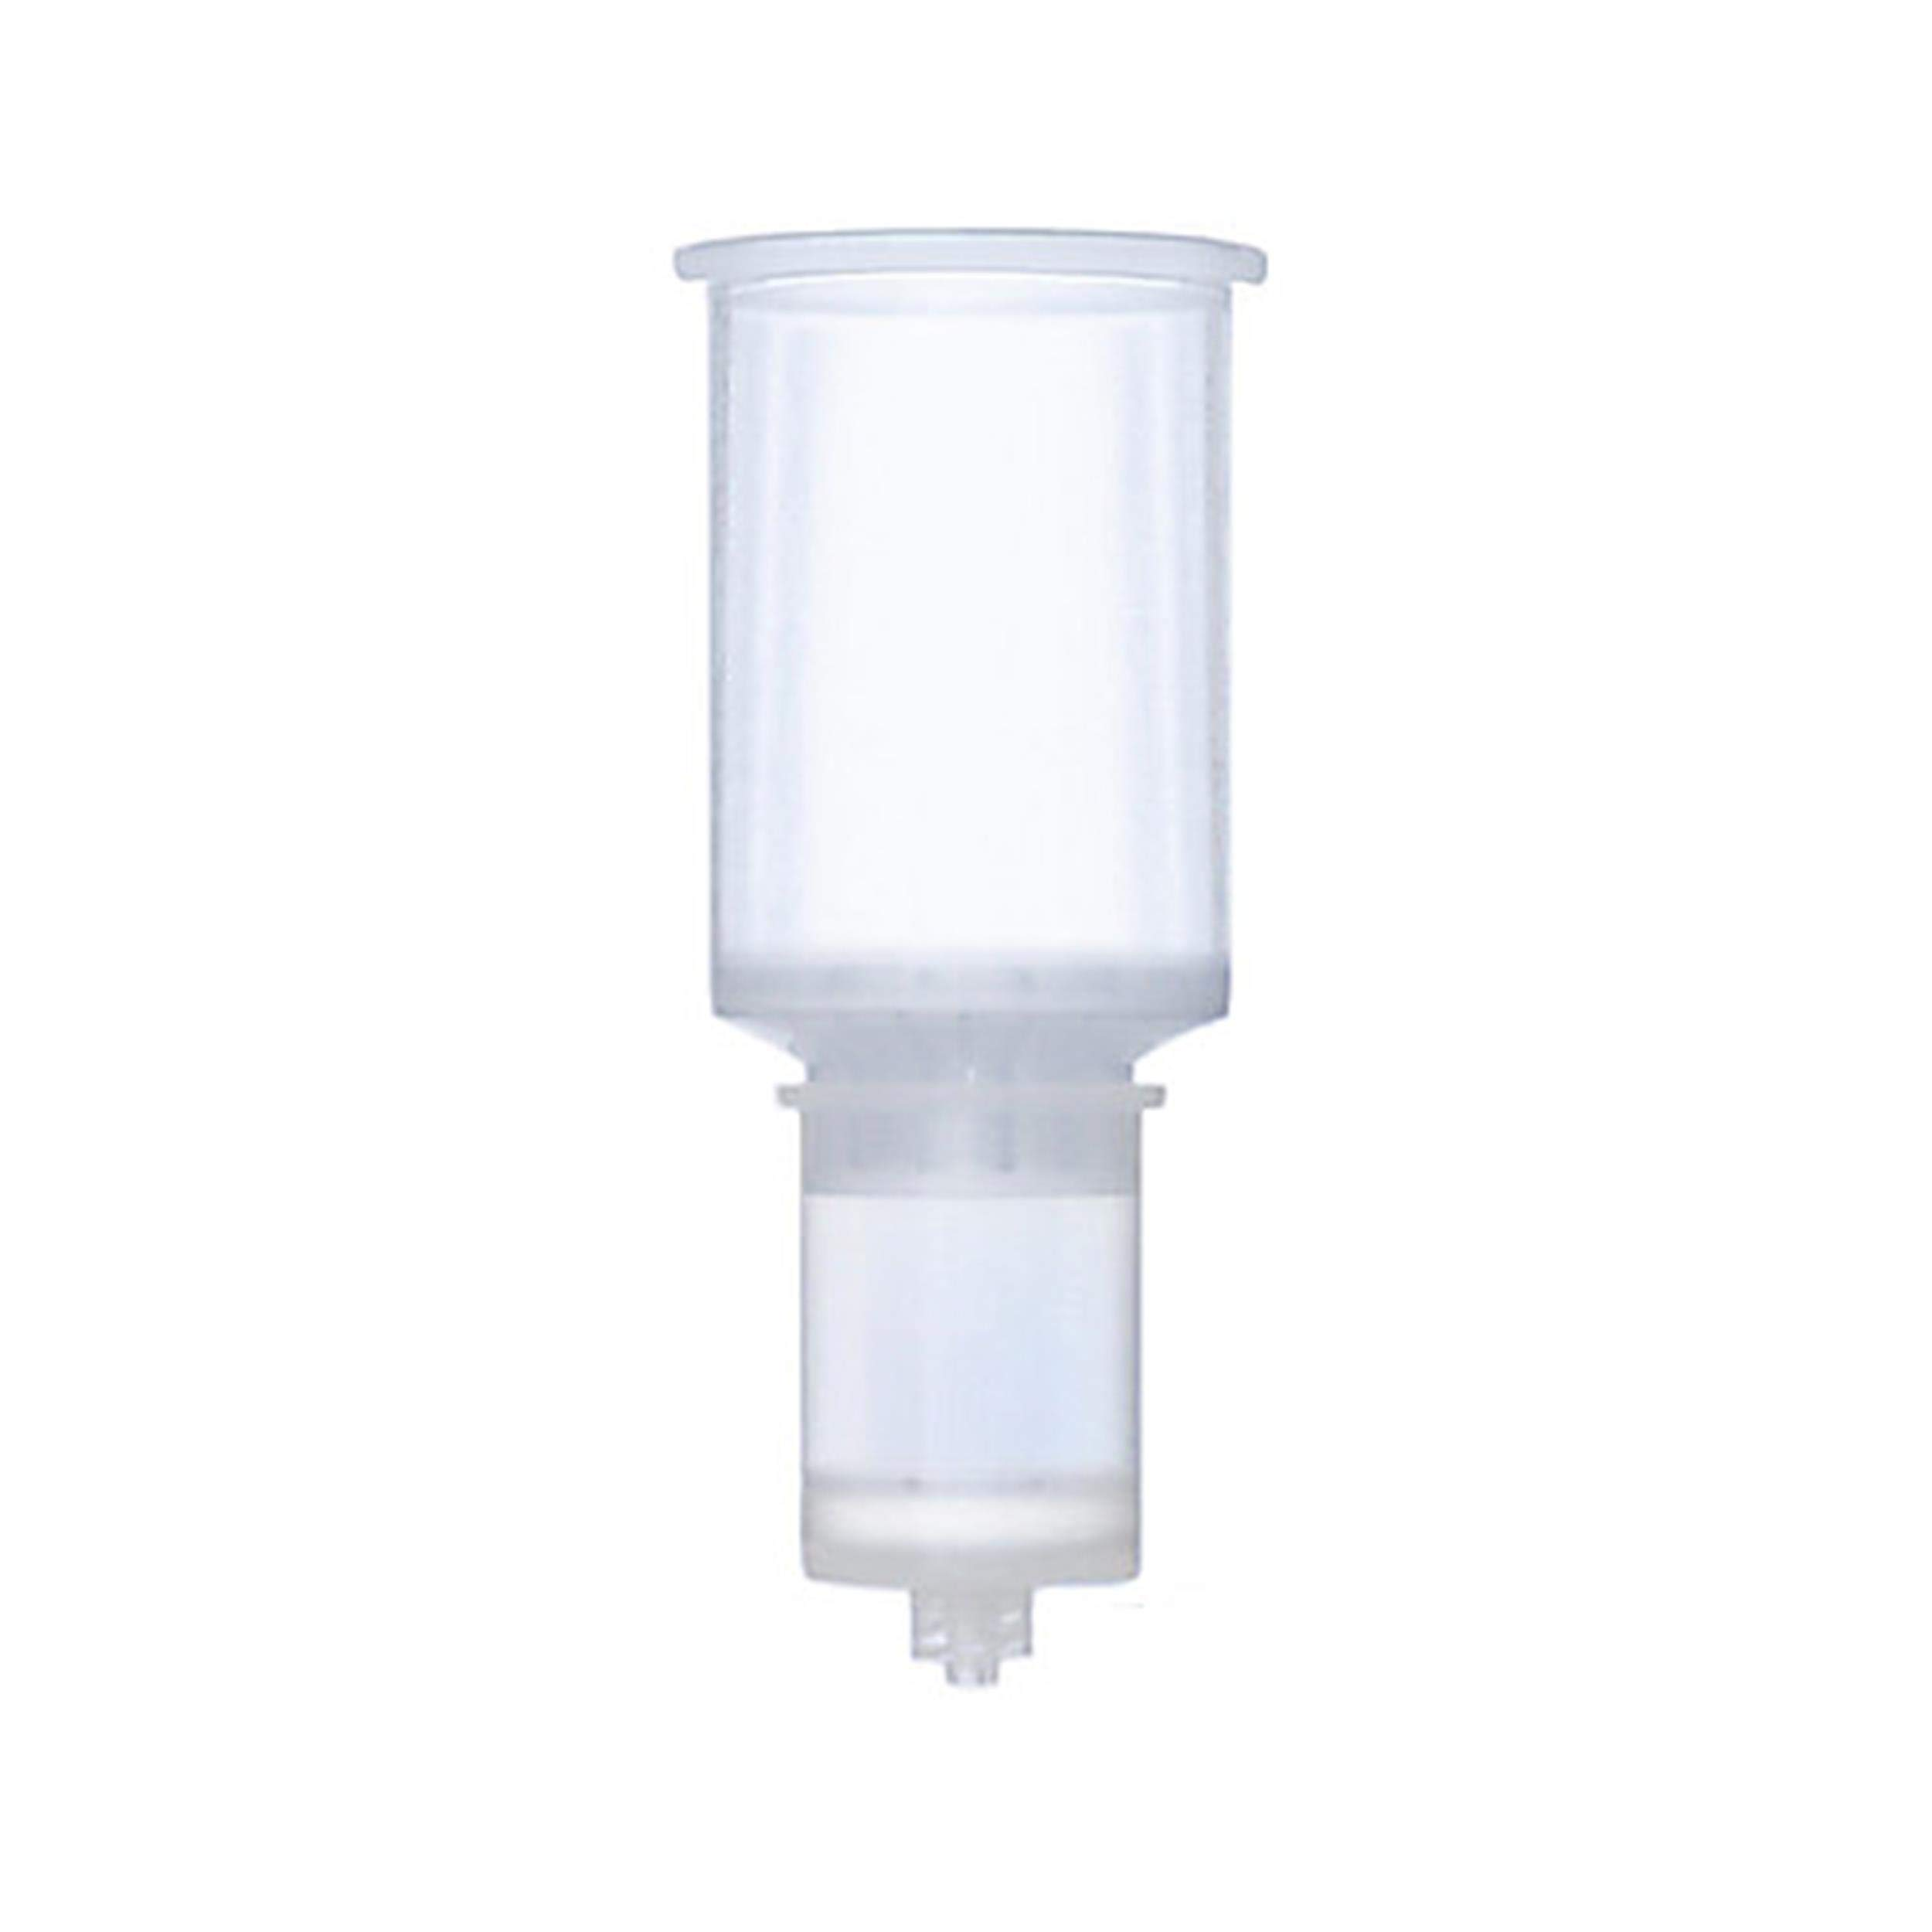 Zymo Research C1017-10 Zymo-Spin VI Column with Zymo-Maxi Filter (Pack of 10) by Zymo Research